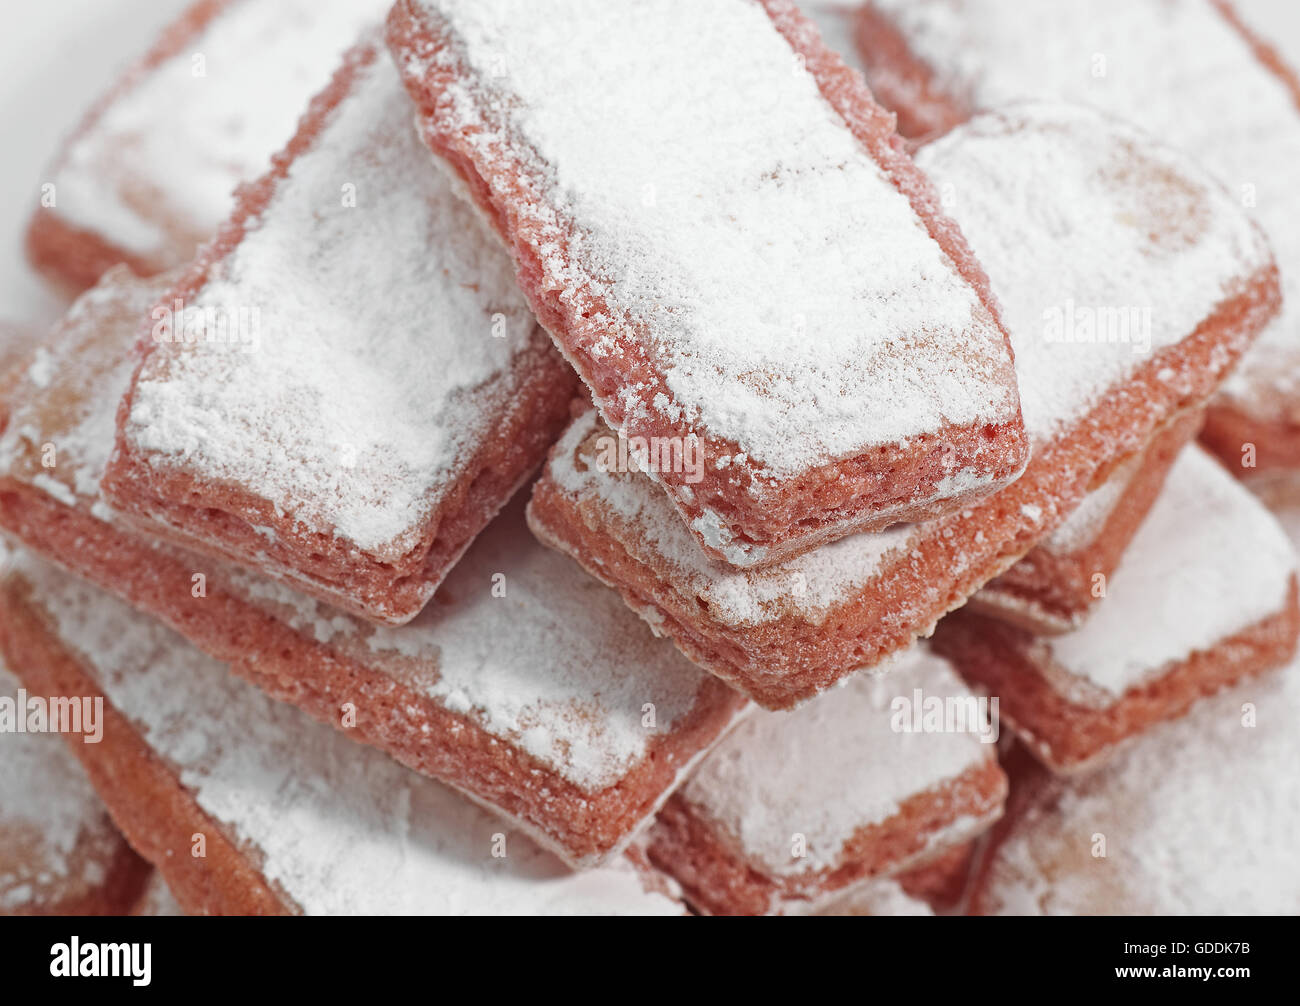 Biscuit Rose de Reims, Pink Biscuit found in French cuisine, It is customary to dip the biscuit in champagne - Stock Image